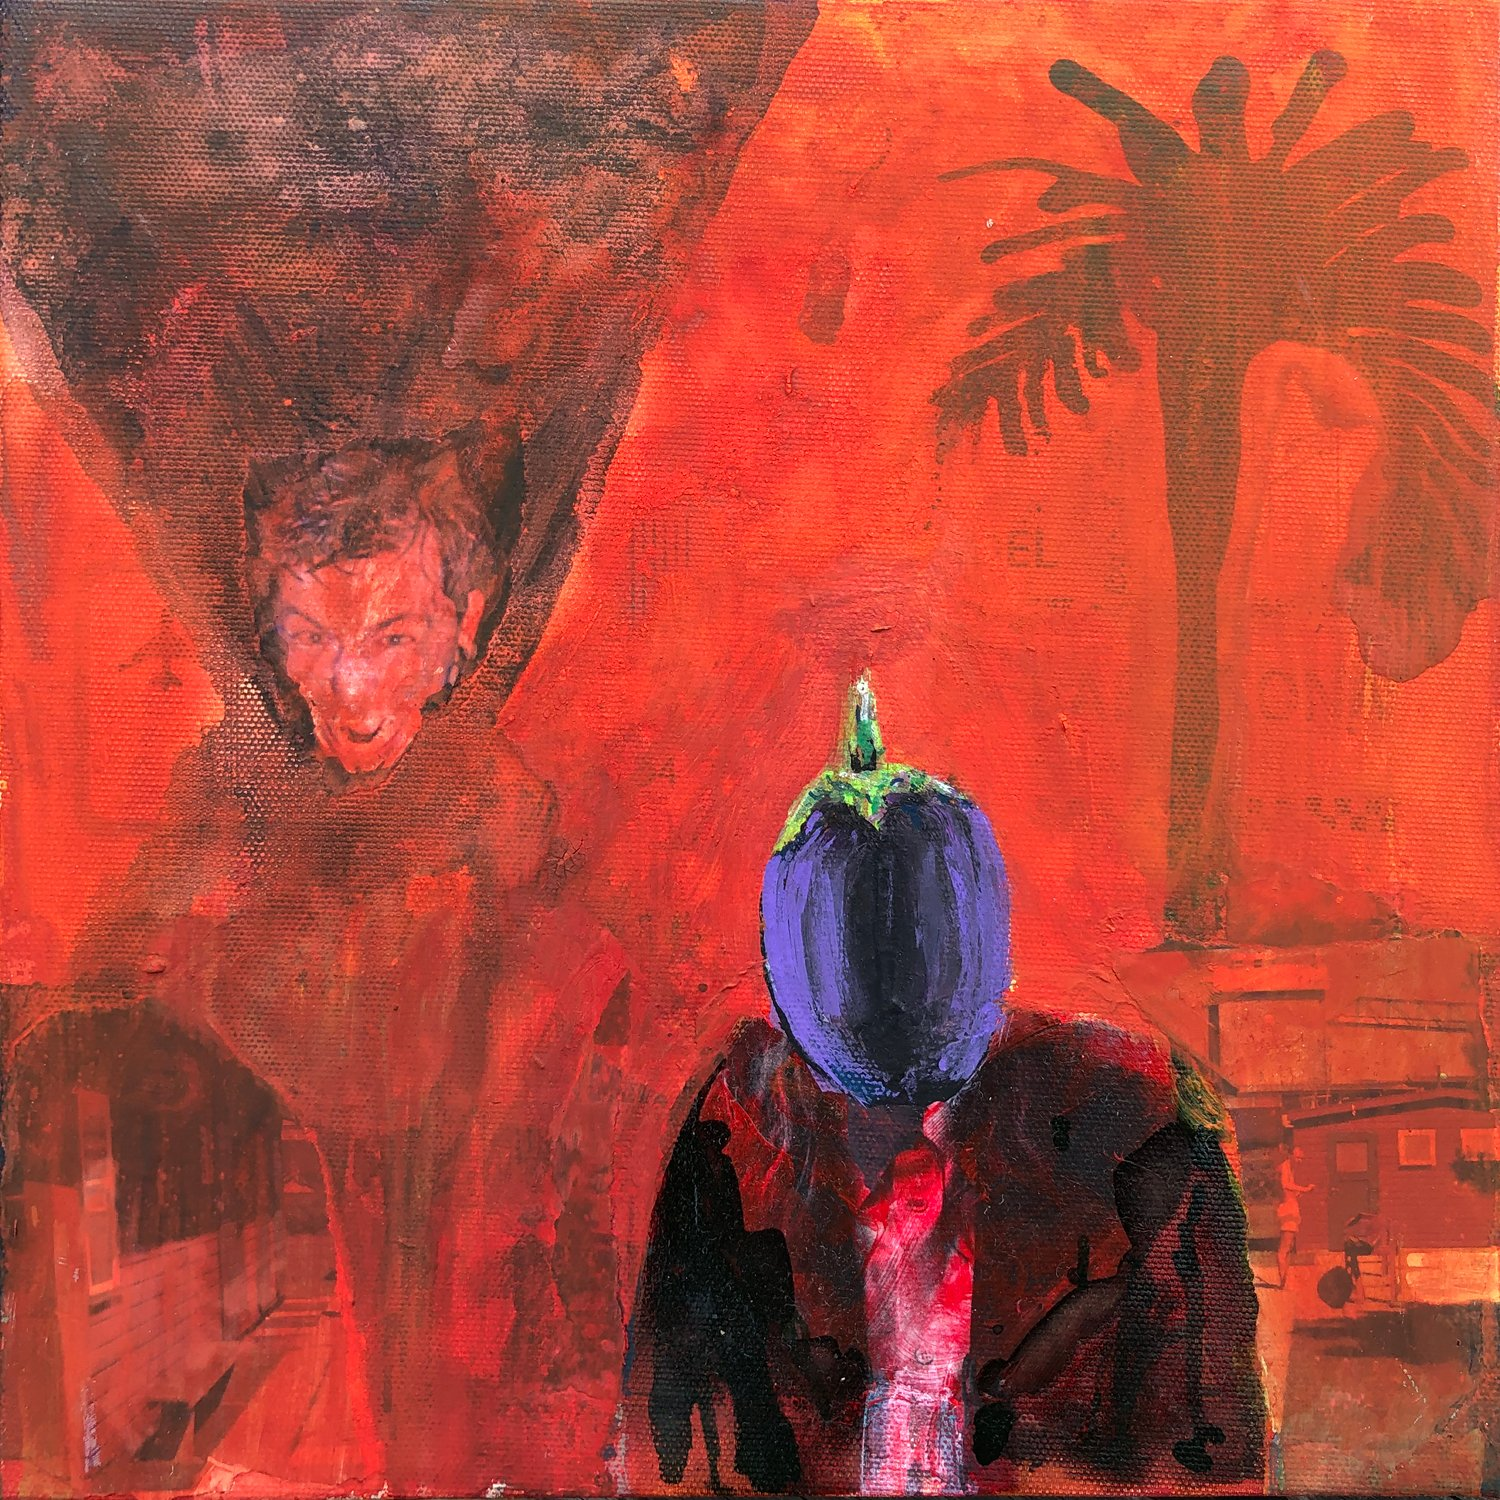 Eggplant Man With Selfportrait